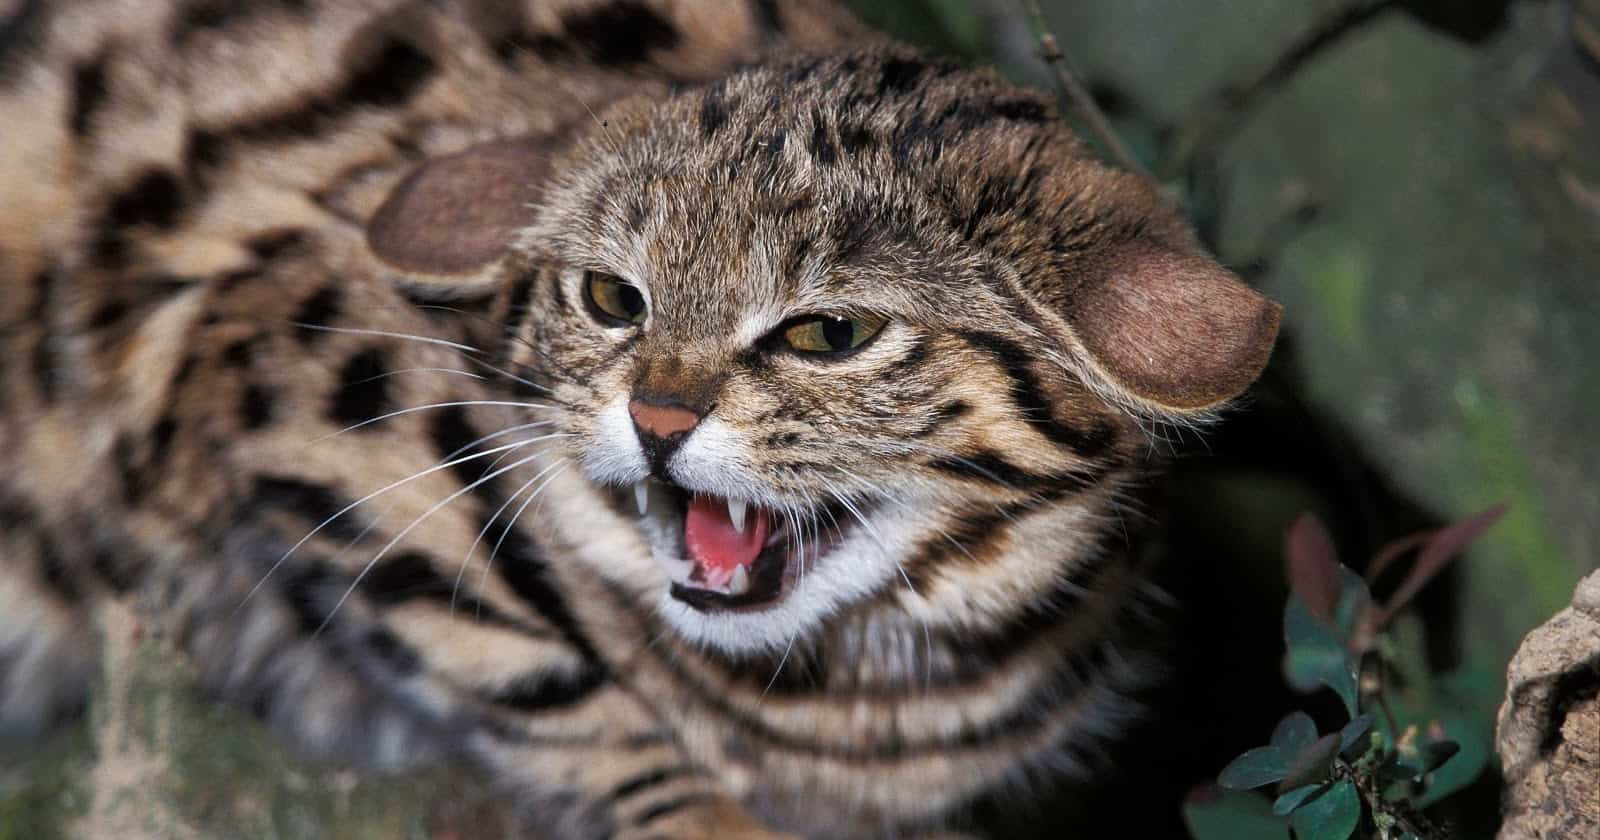 Want to know about the most dangerous cat breeds? Check out 8 that aren't for the feint of heart. Surprisingly, many are legal to own!